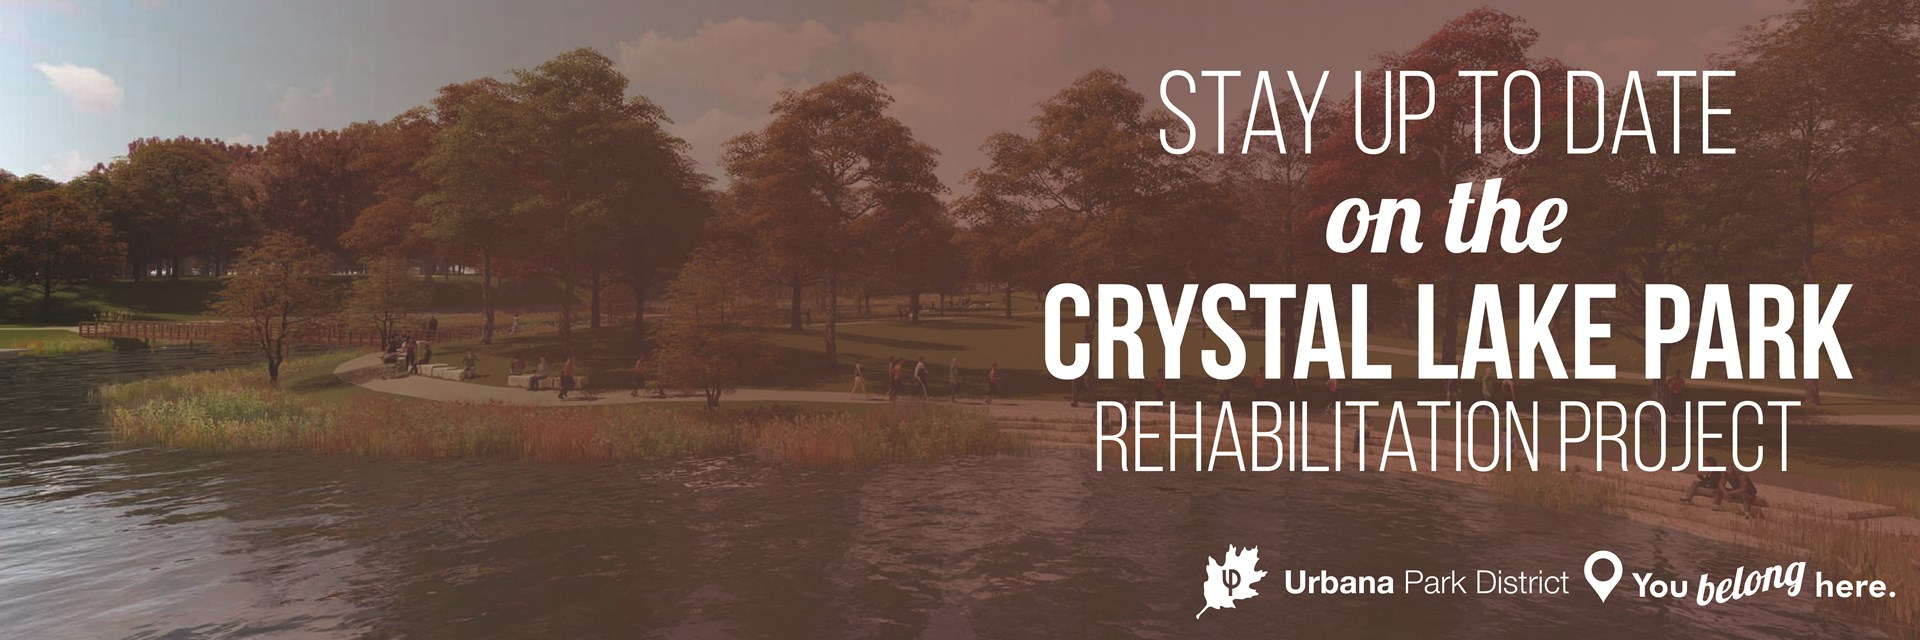 Crystal Lake Park Rehabilitation Project